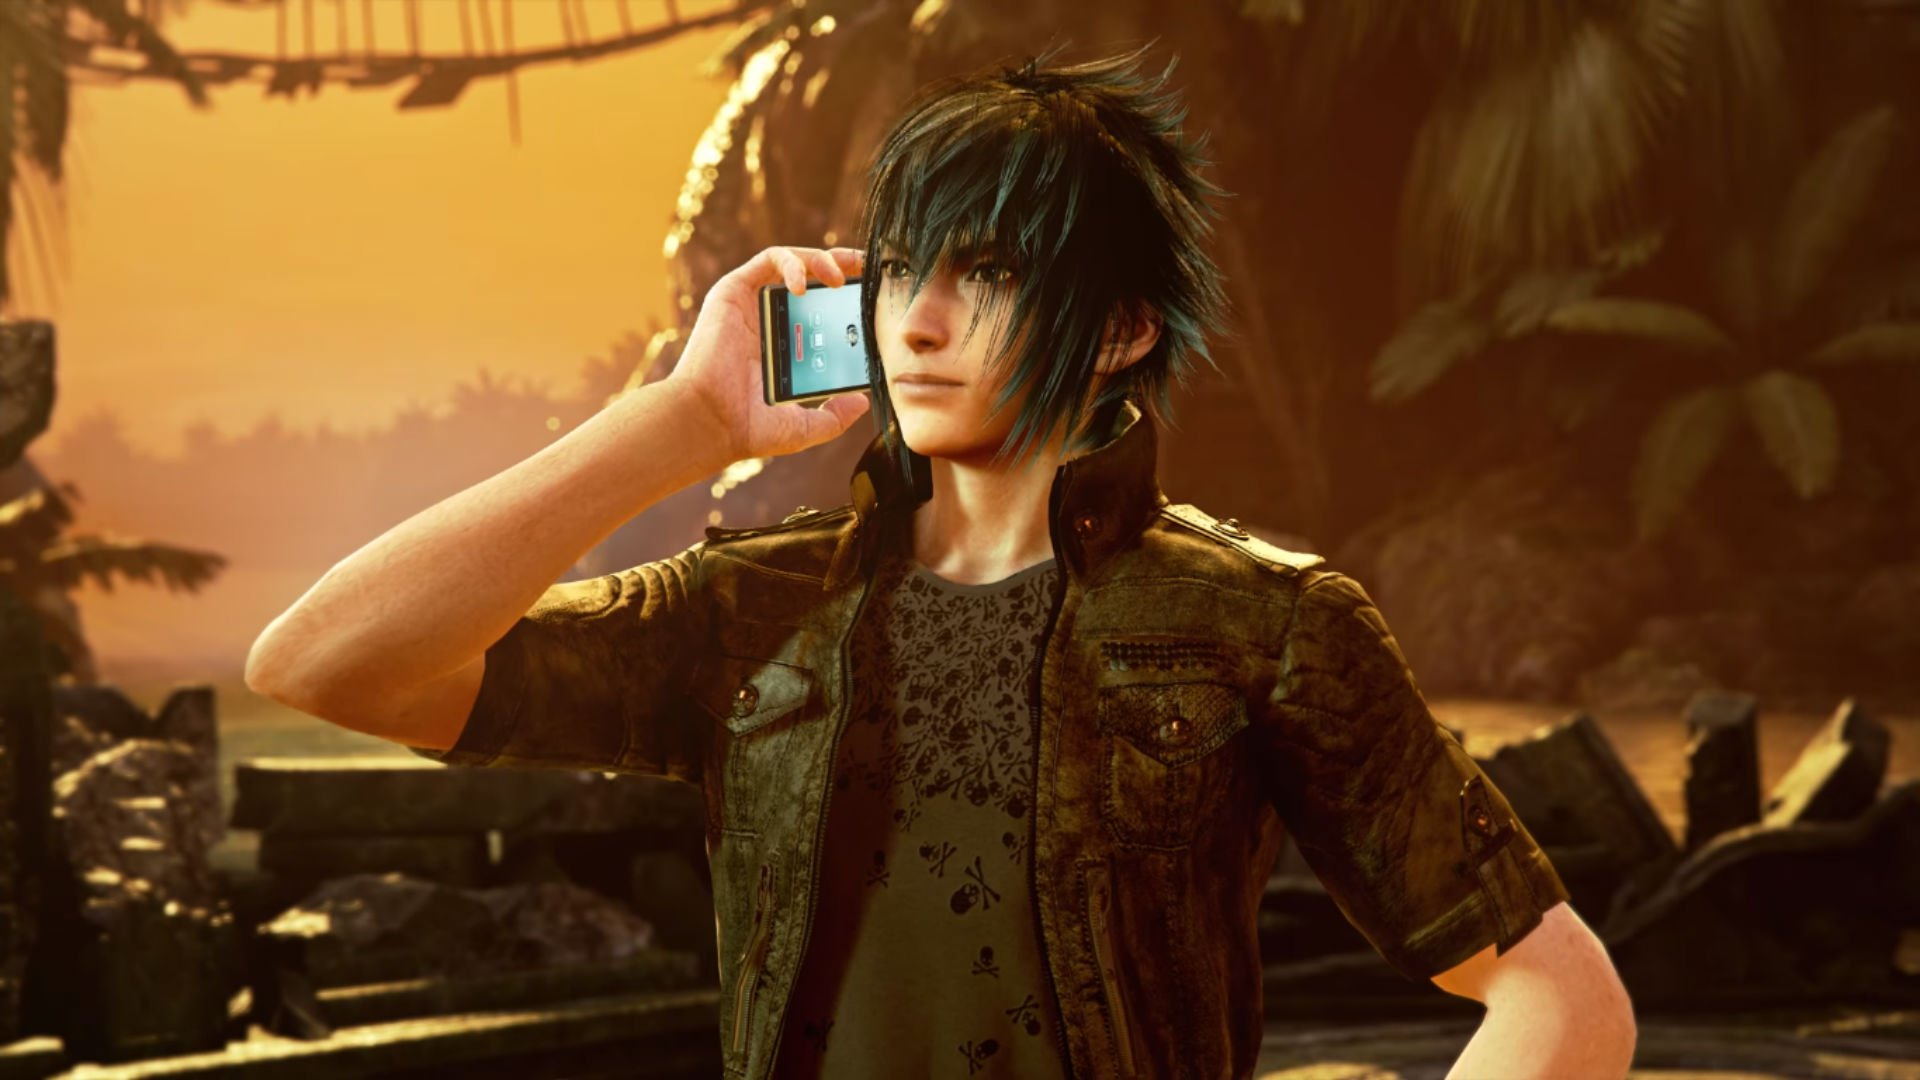 Final Fantasy XV's Noctis is coming to Tekken 7 screenshot